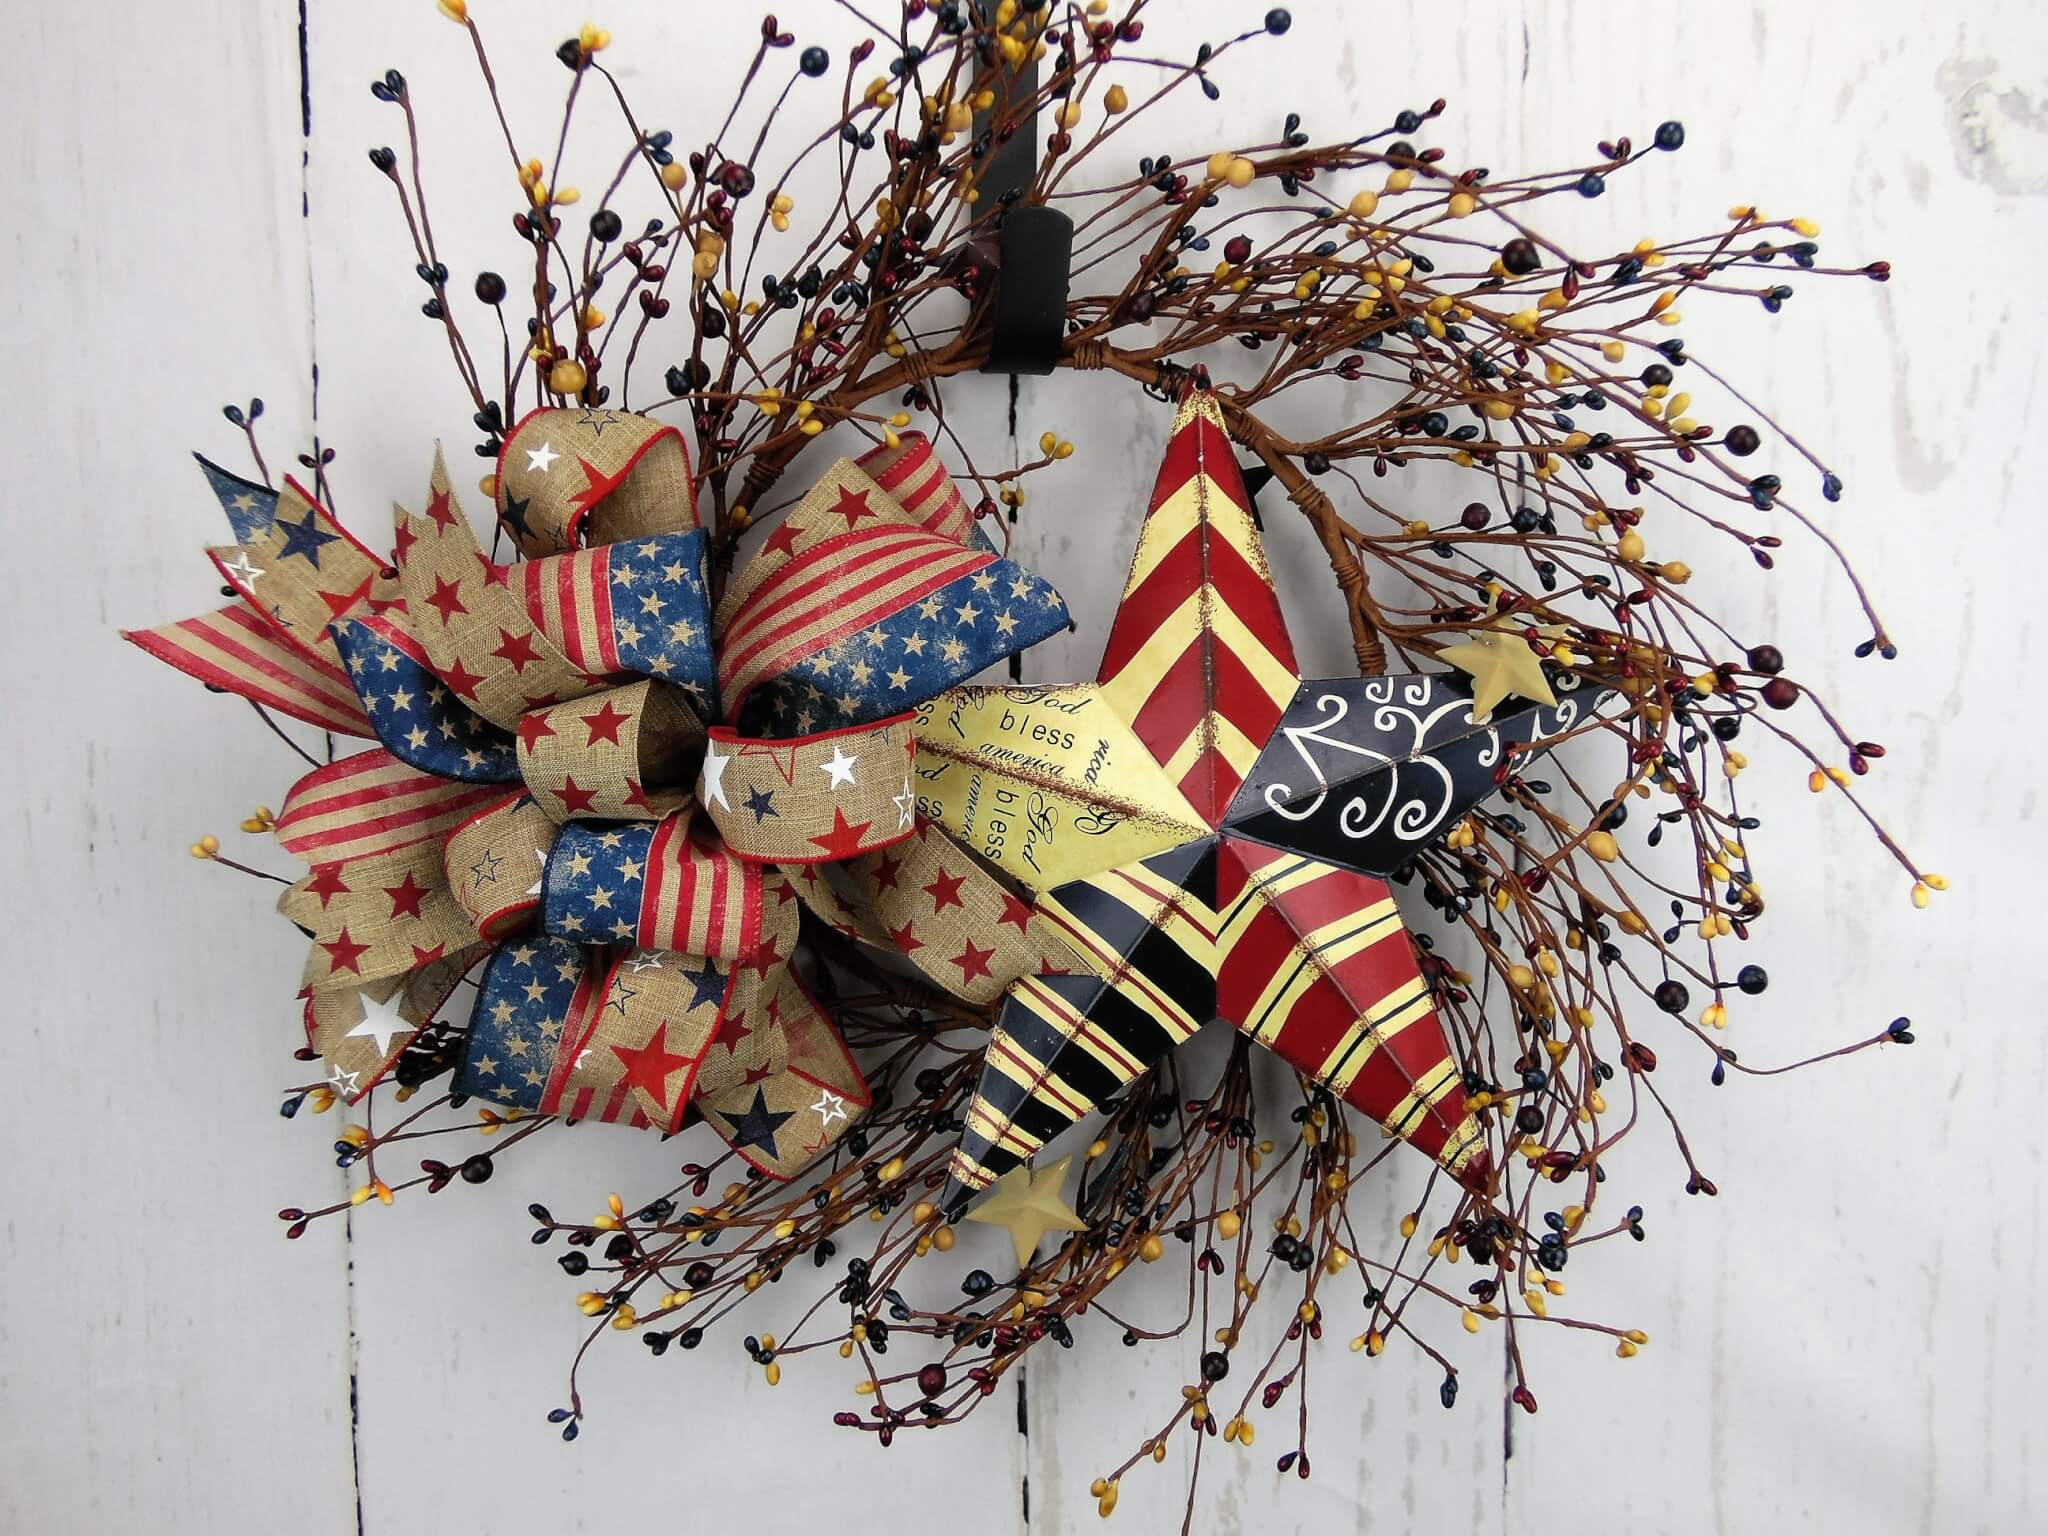 Pip-Berry-Patriotic-Wreath-with-Bow-and-Star-Small-2 A Patriotic Home Decorating Theme